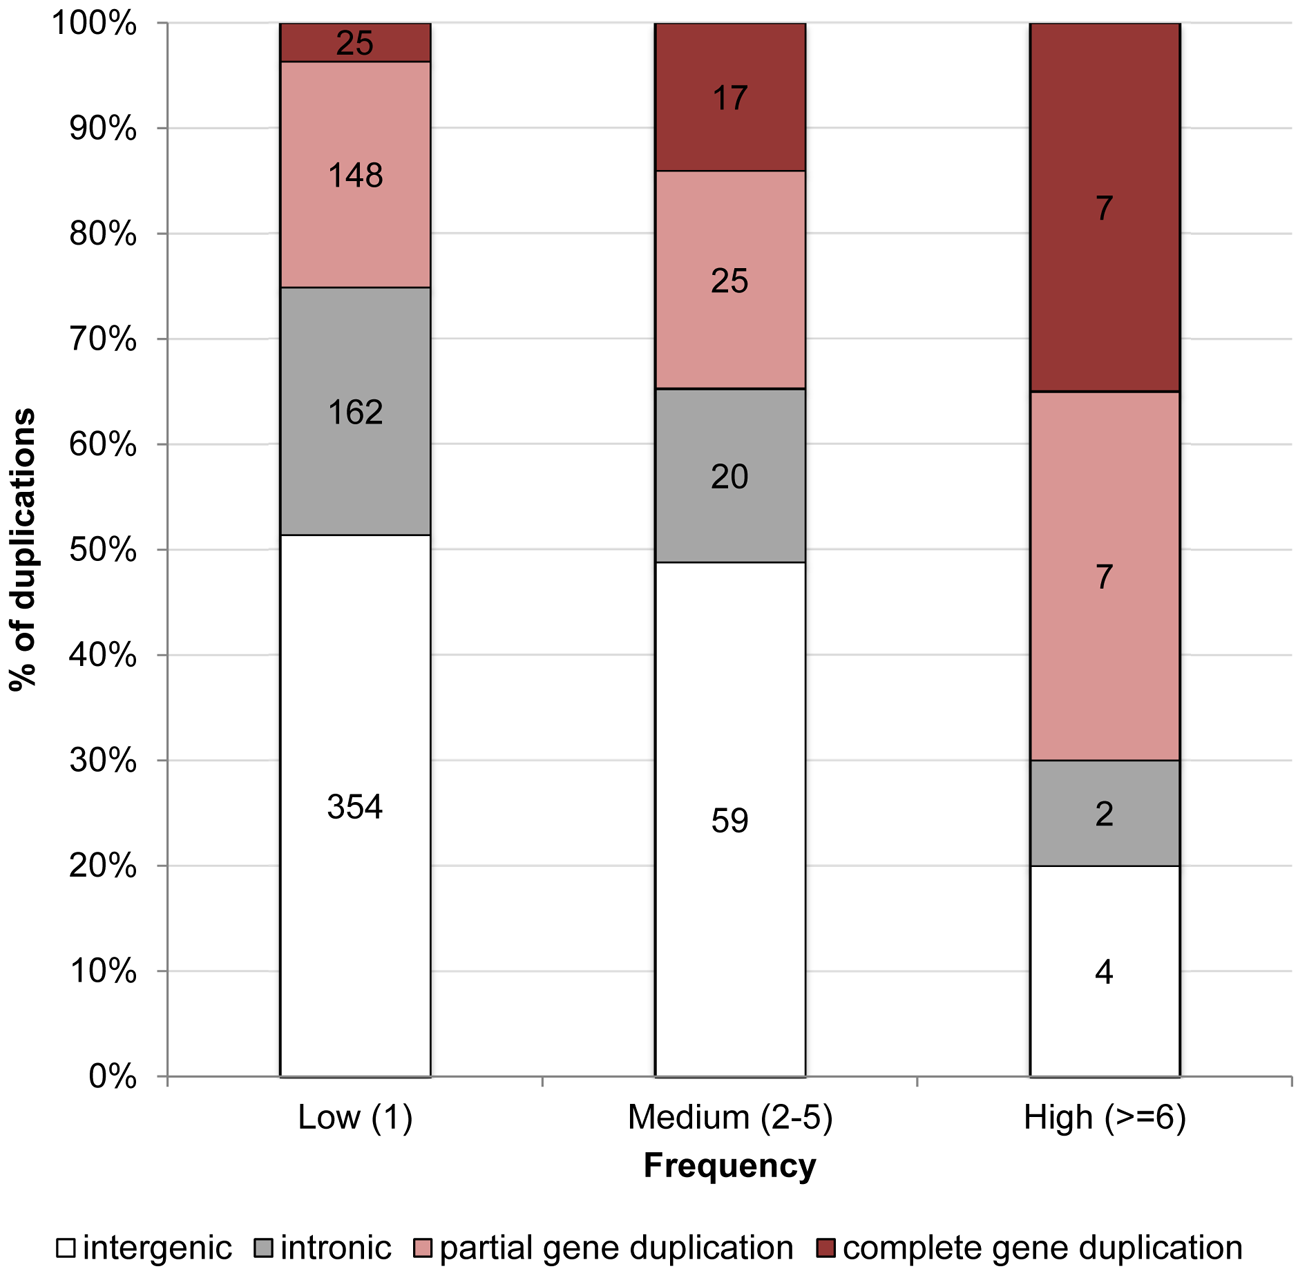 Proportion of duplications in low-, medium-, and high-frequency overlapping different genomic contexts in <i>D. simulans</i>.